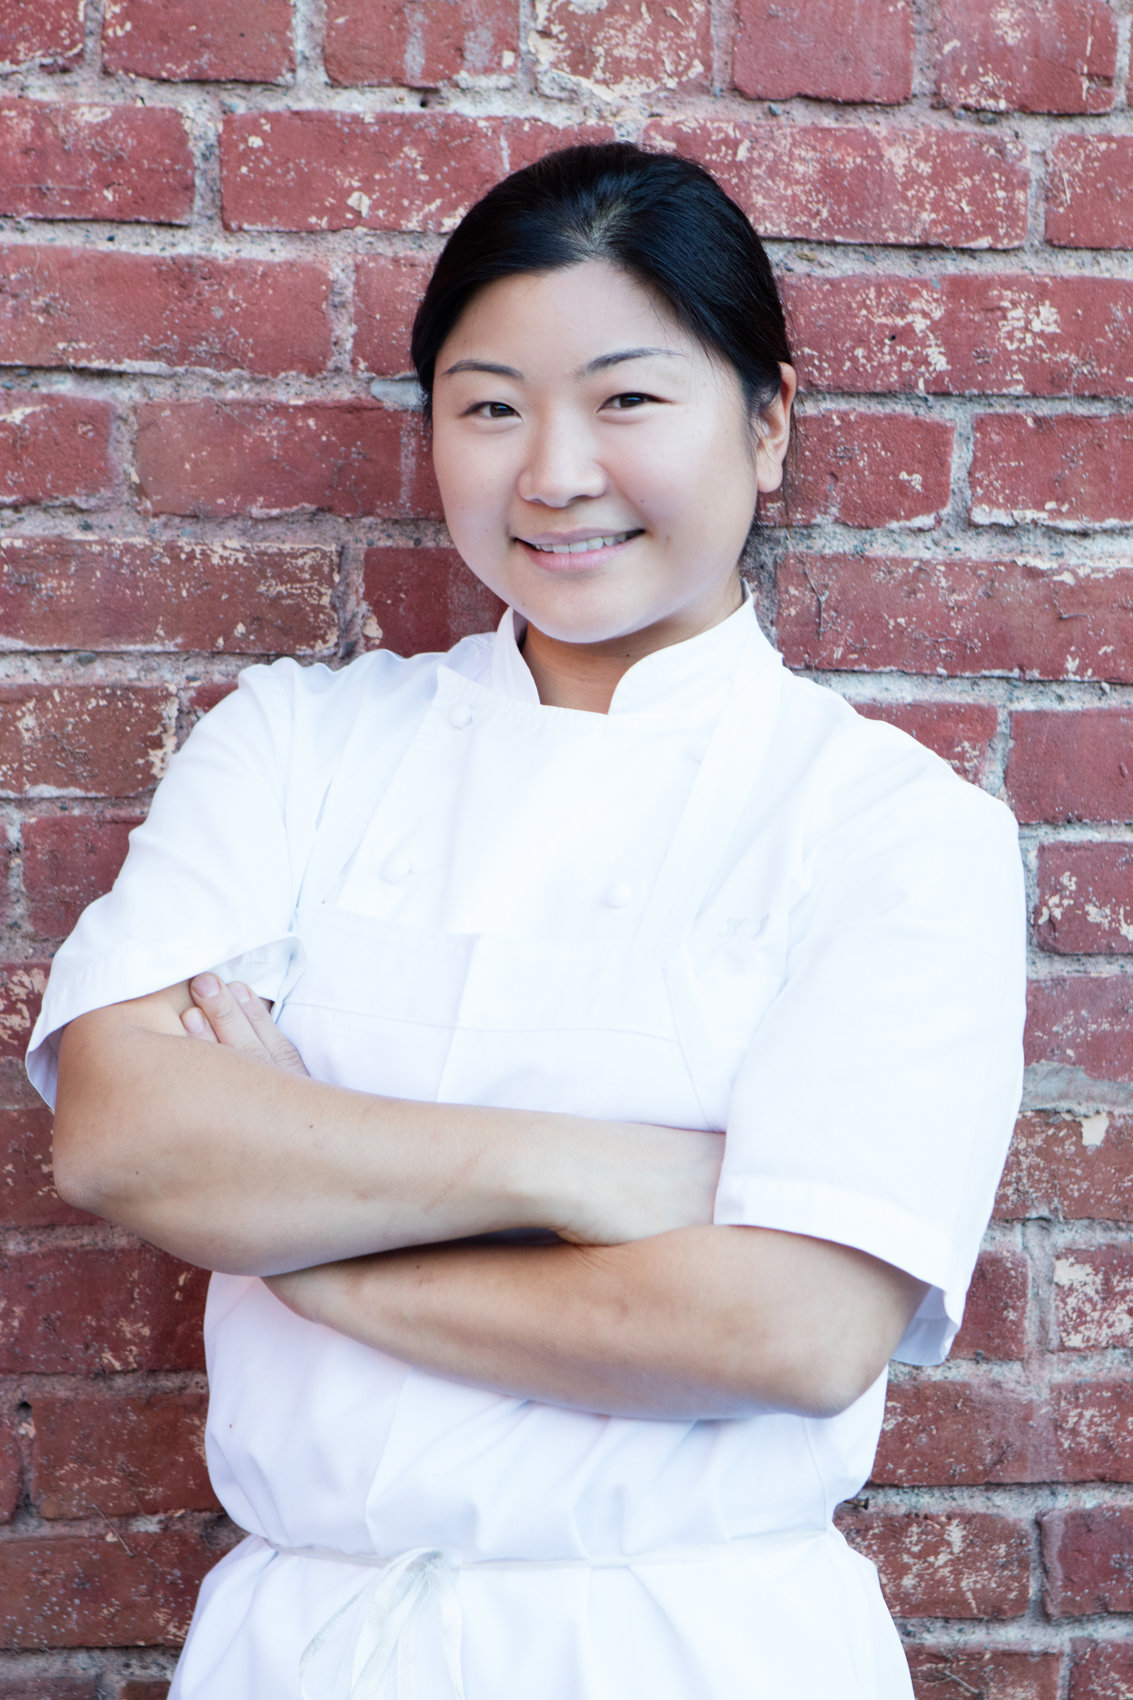 Professional Headshot Woman Chef